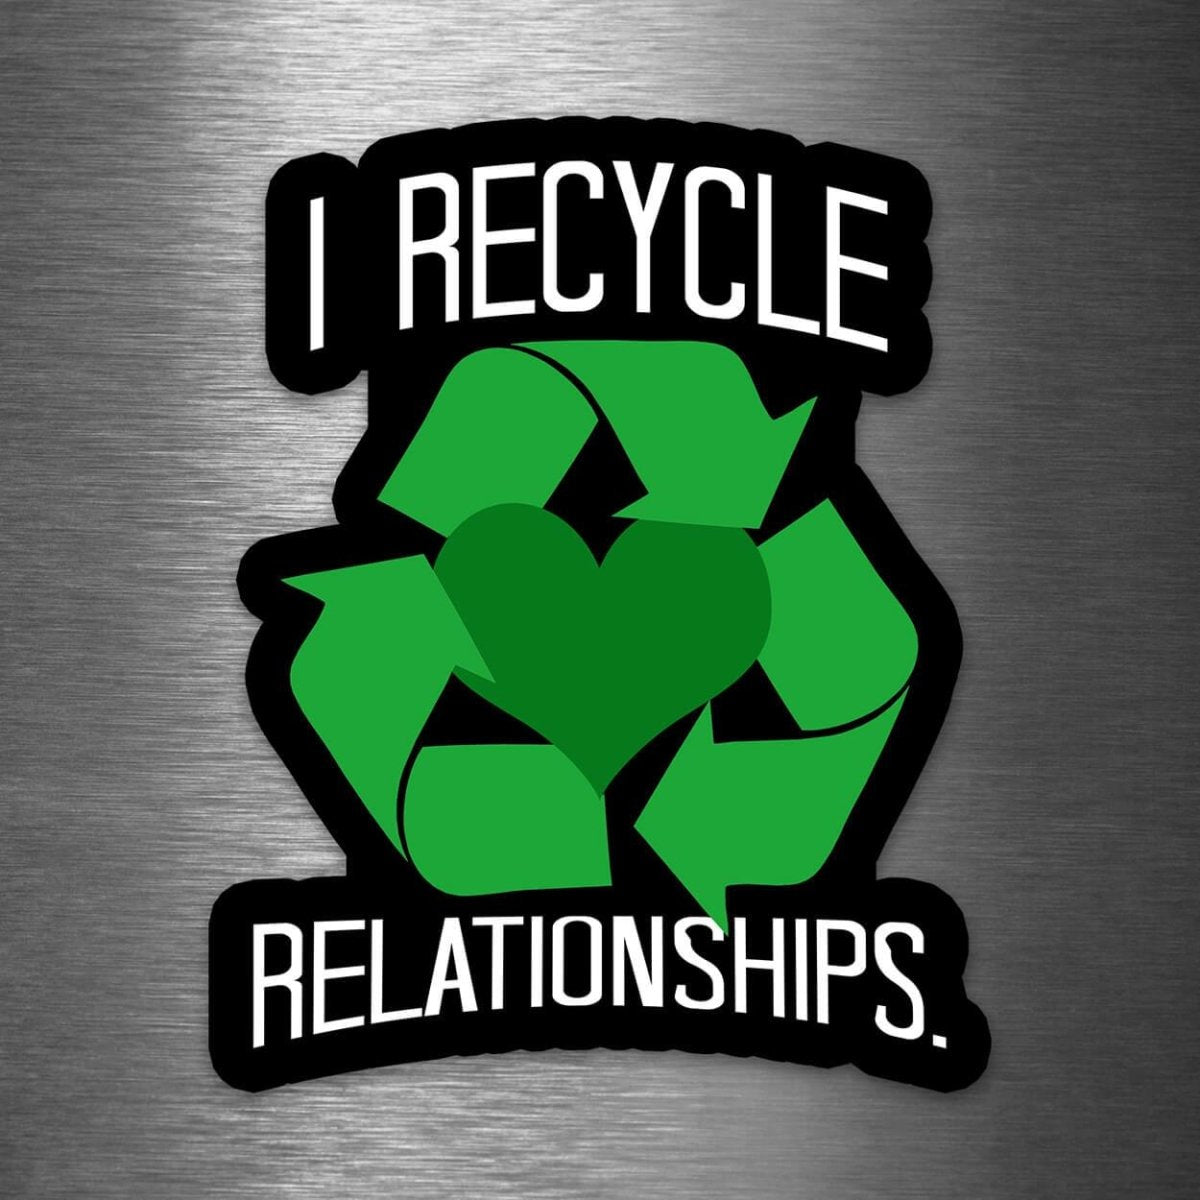 I Recycle Relationships - Vinyl Sticker - Dan Pearce Sticker Shop